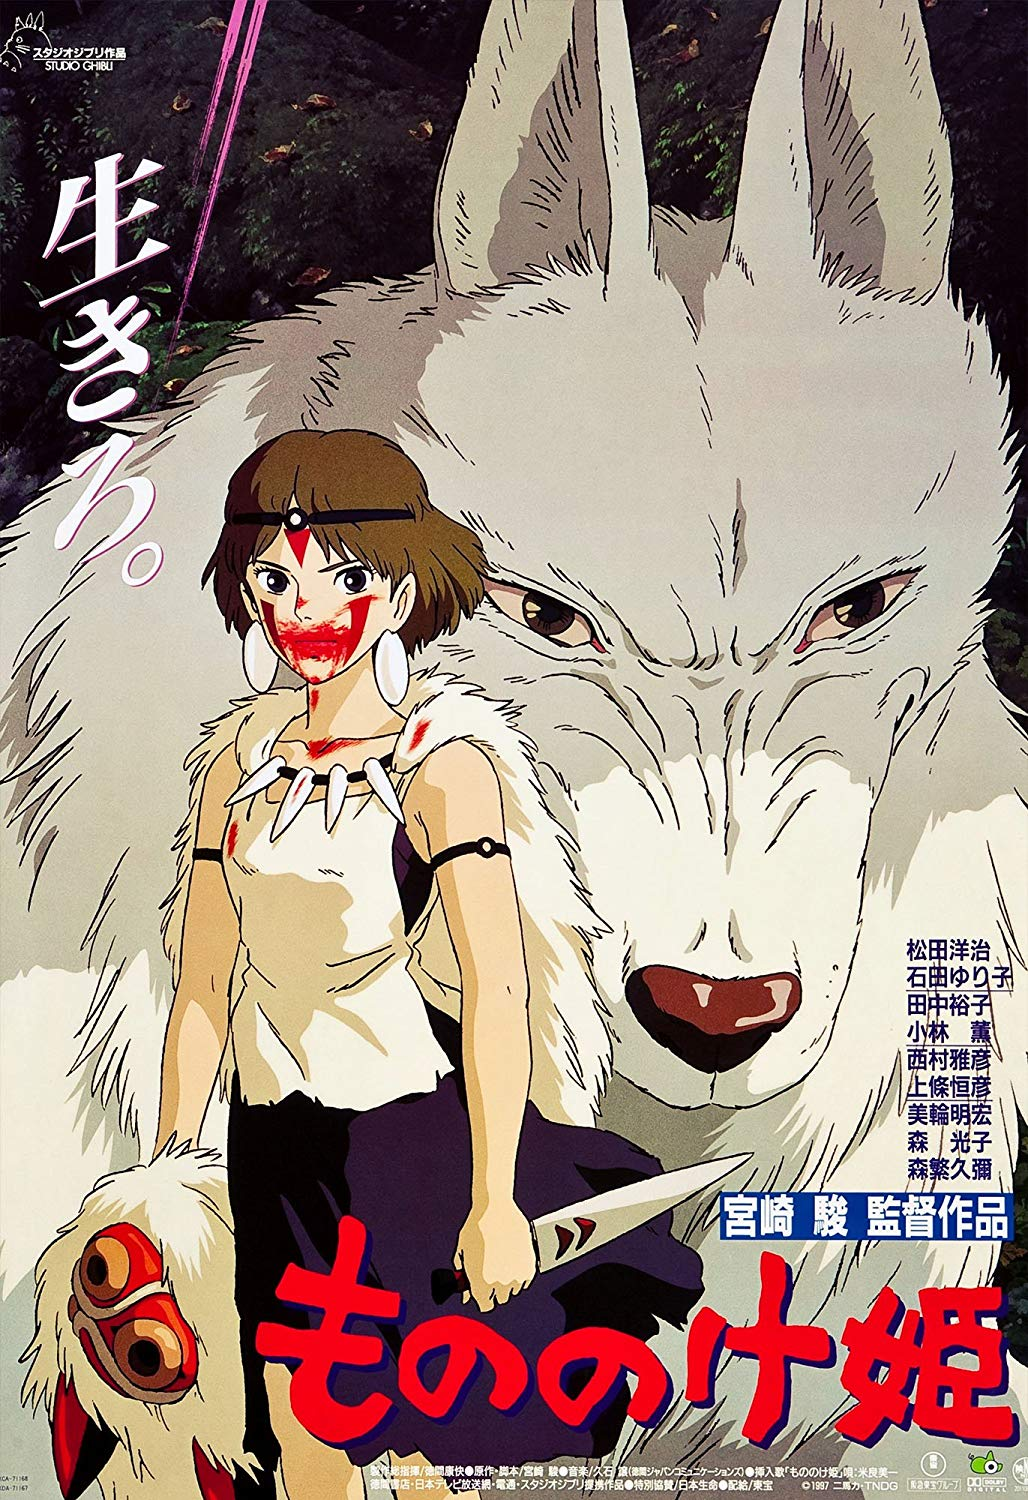 Kiki's Delivery Service and Princess Mononoke by Hayao Miyazaki and Studio Ghibli.